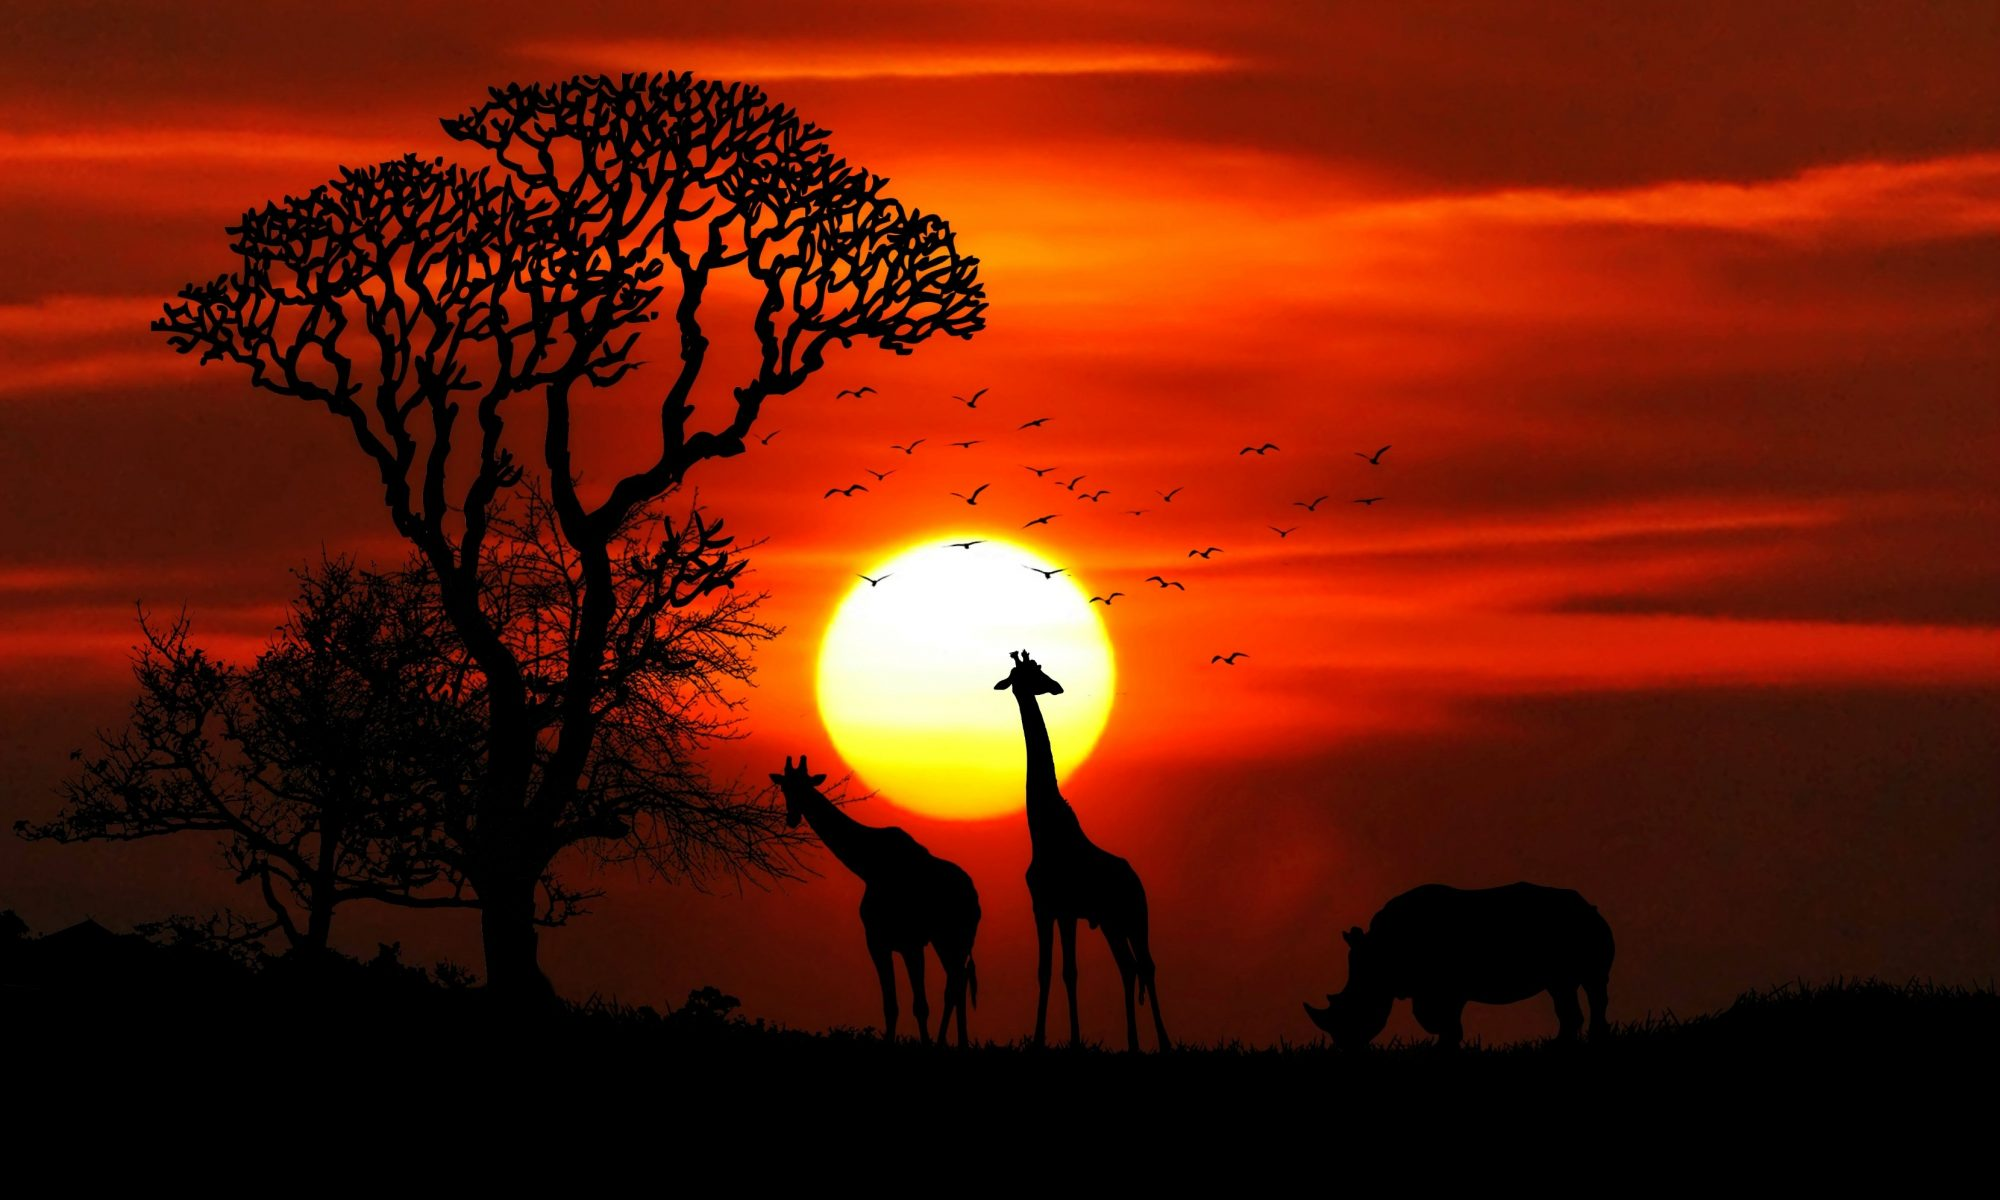 Canva - Silhouette Photography of Two Giraffe and Rhinoceros during Golden Hour